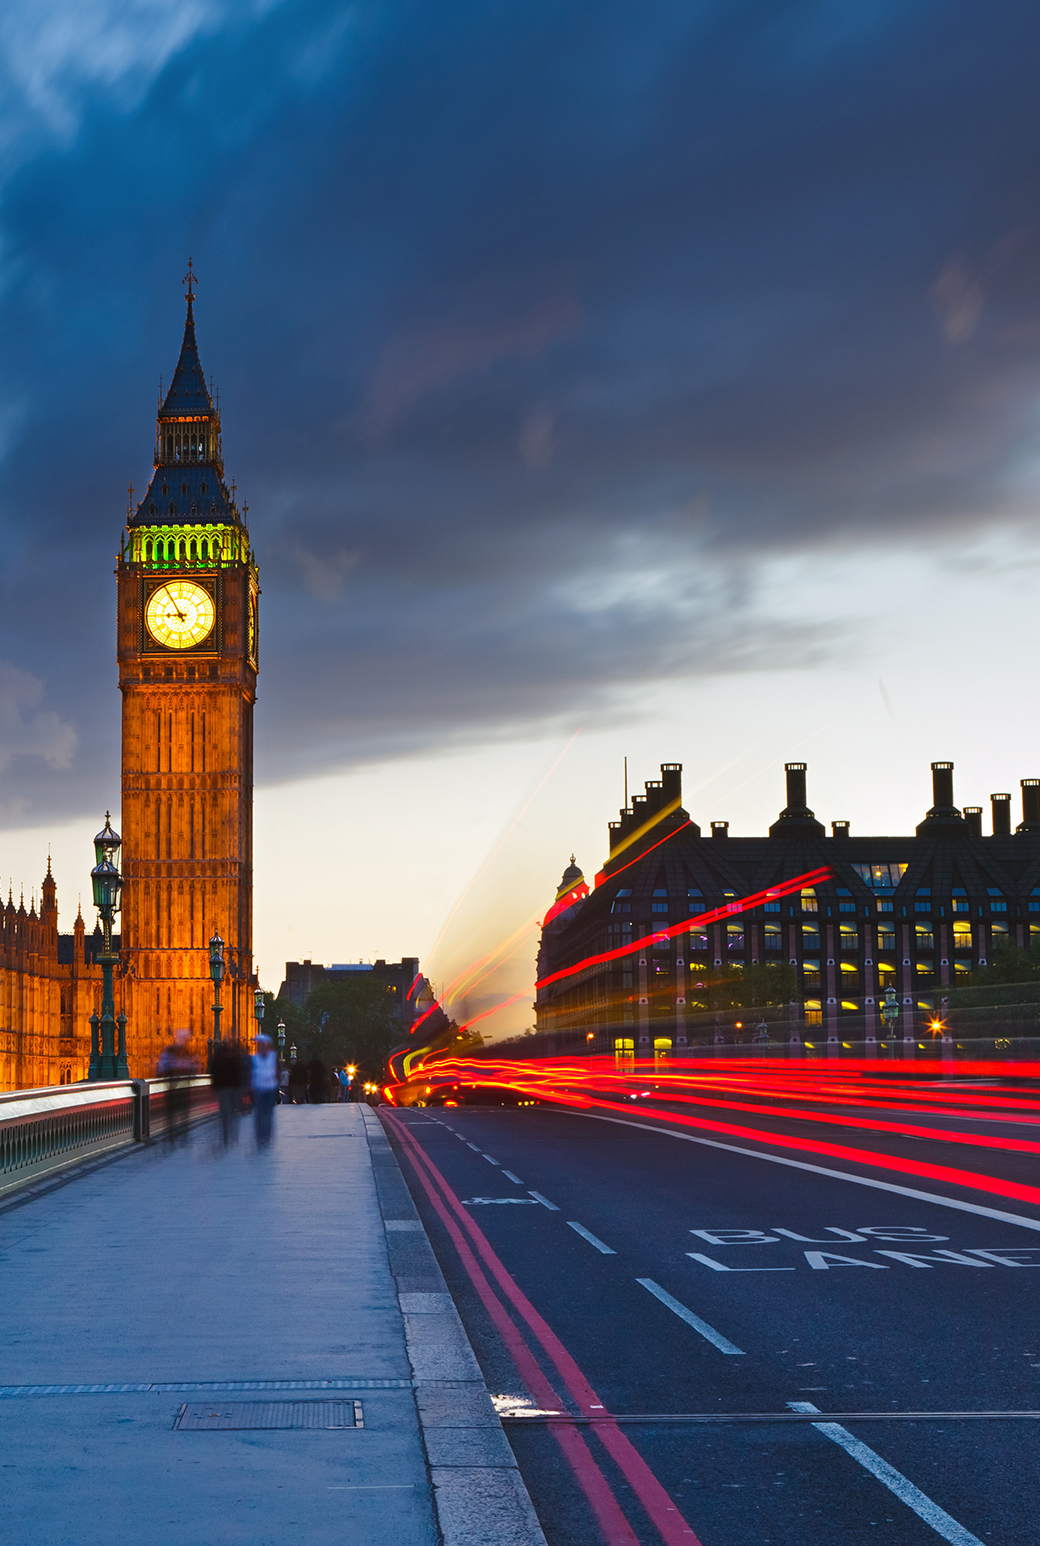 Nike Wallpaper Iphone 6s Big Ben London Wallpaper For Iphone X 8 7 6 Free